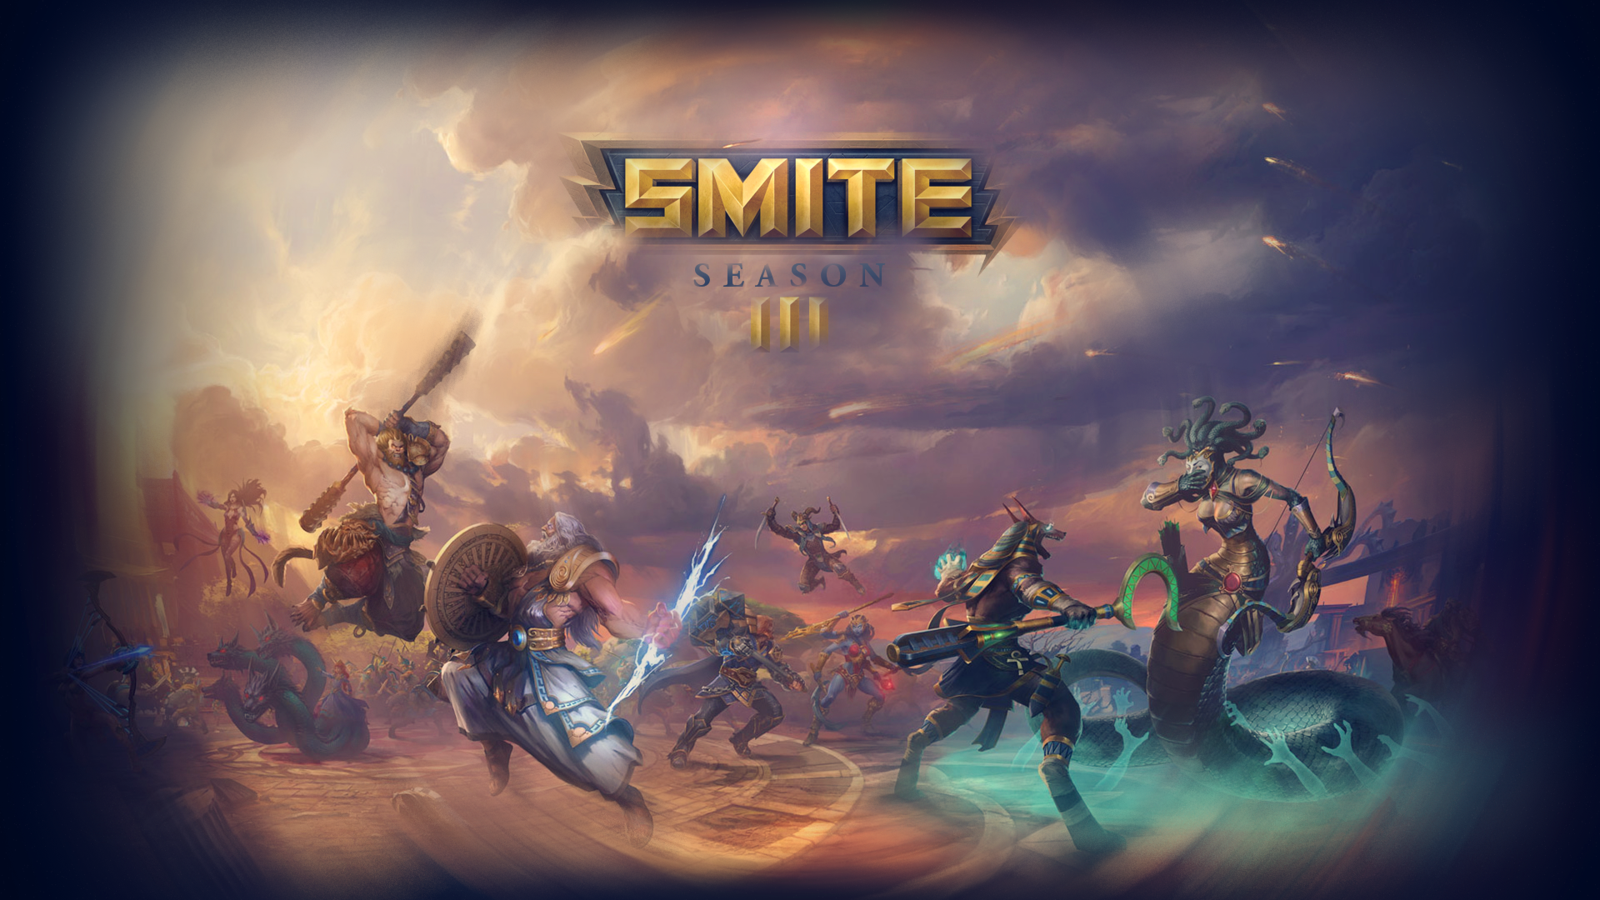 Collection of Smite Widescreen Wallpapers: 27372899, 1600x900